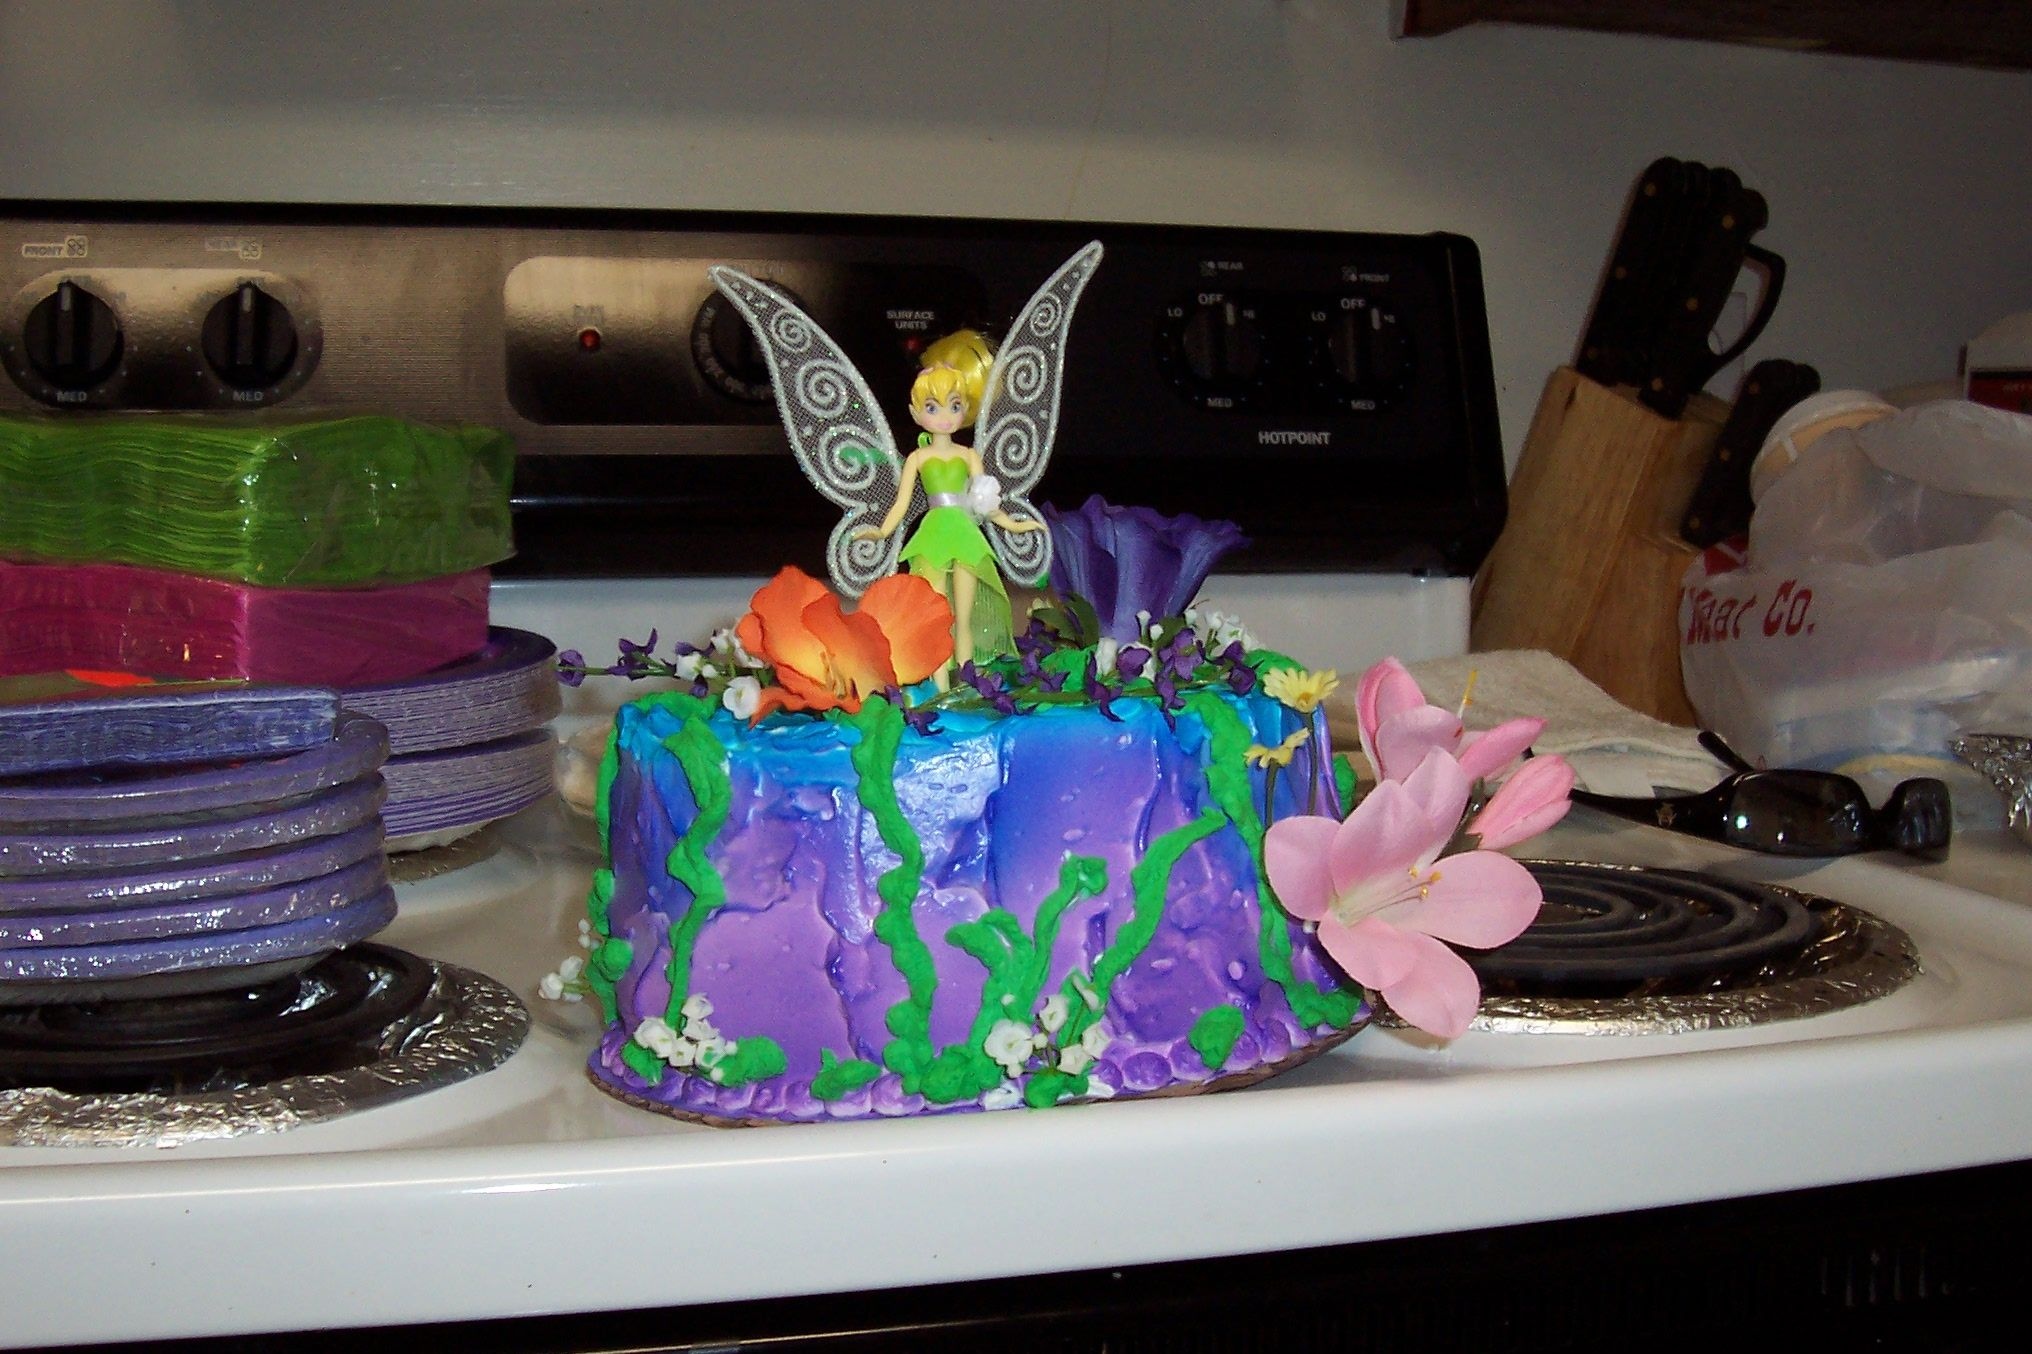 This was shelby's very own cake for her 2nd birthday.